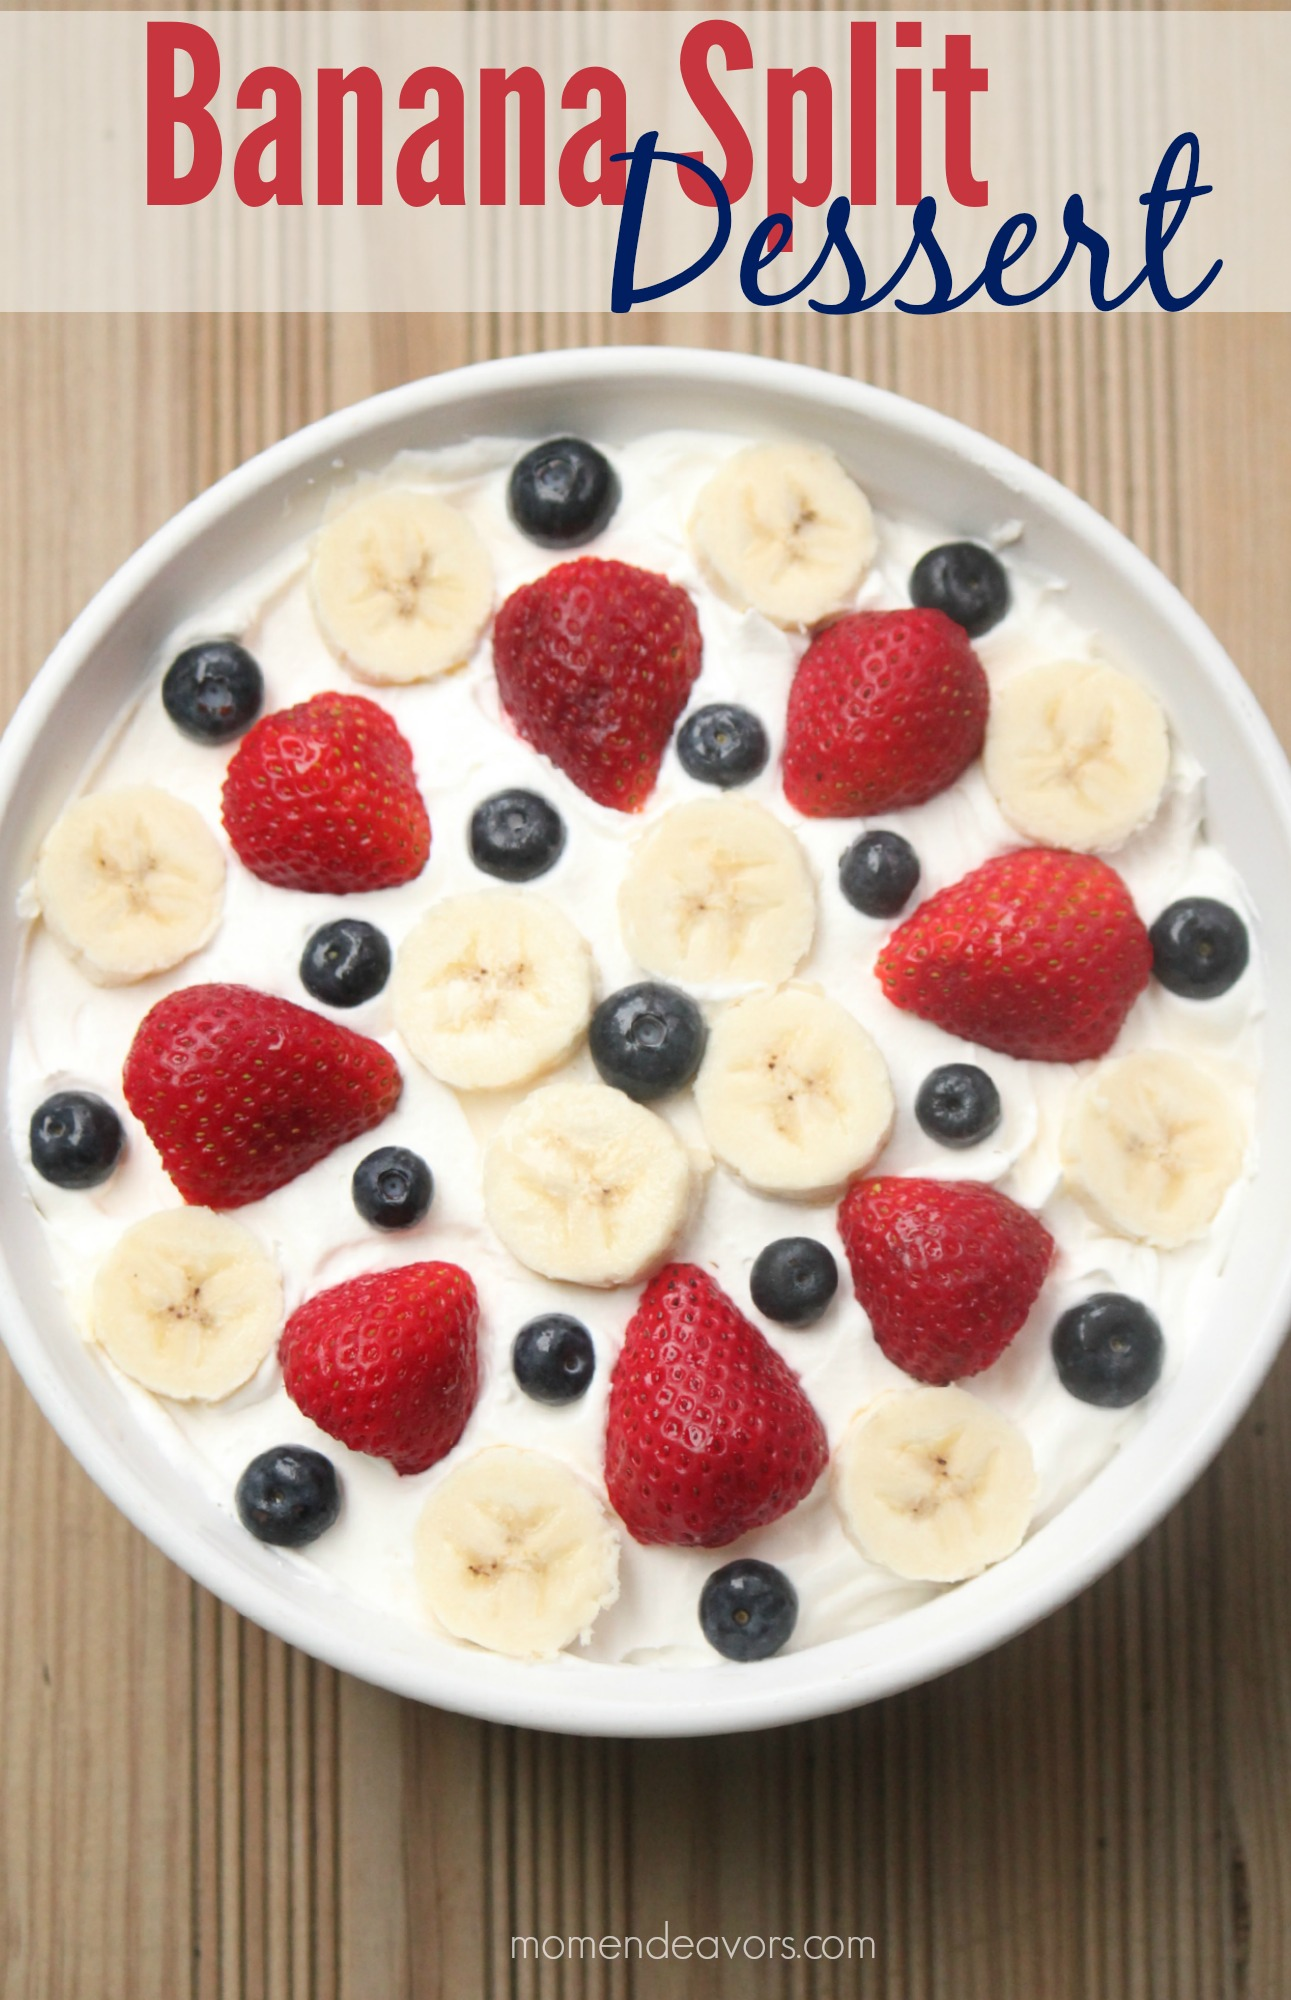 Patriotic Banana Split Dessert